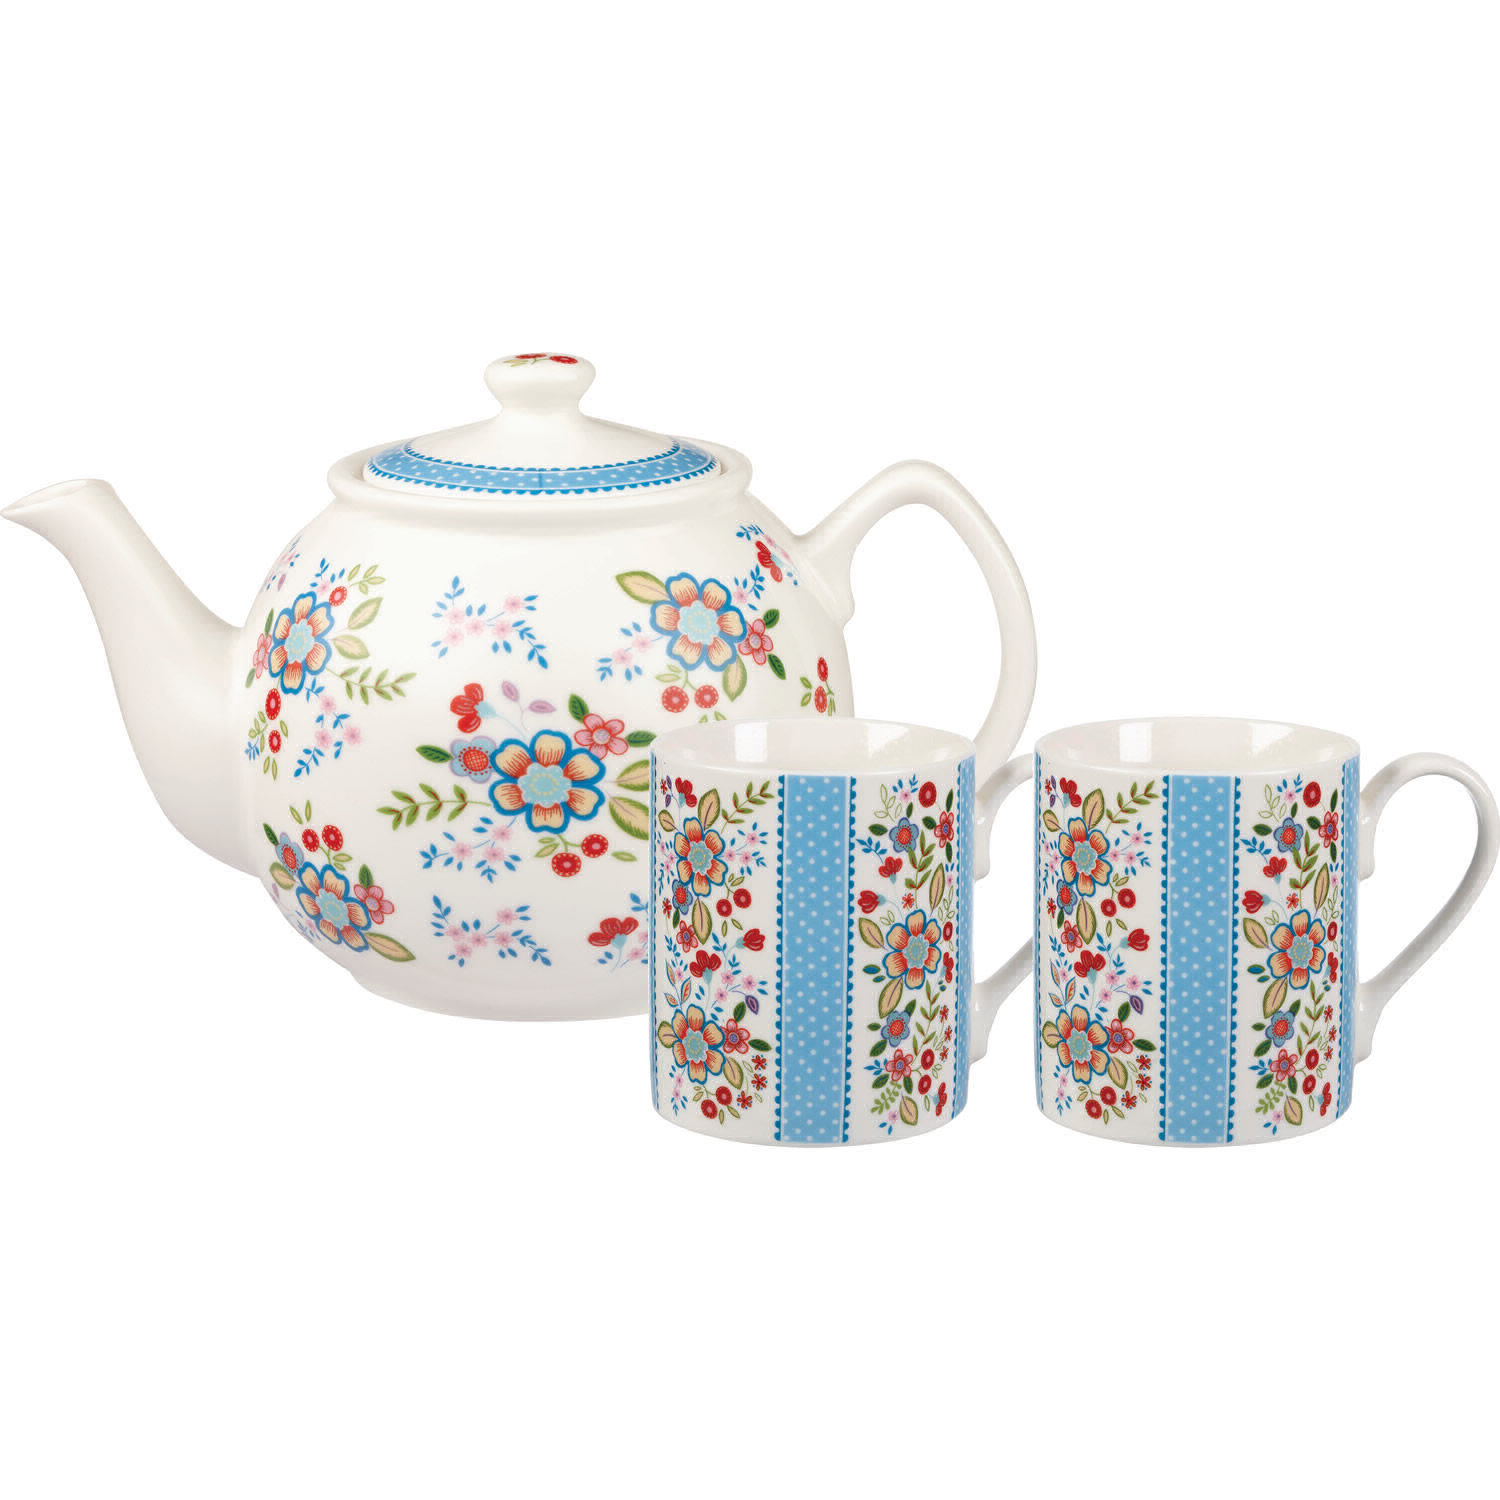 caravan trail teapot and mugs for two